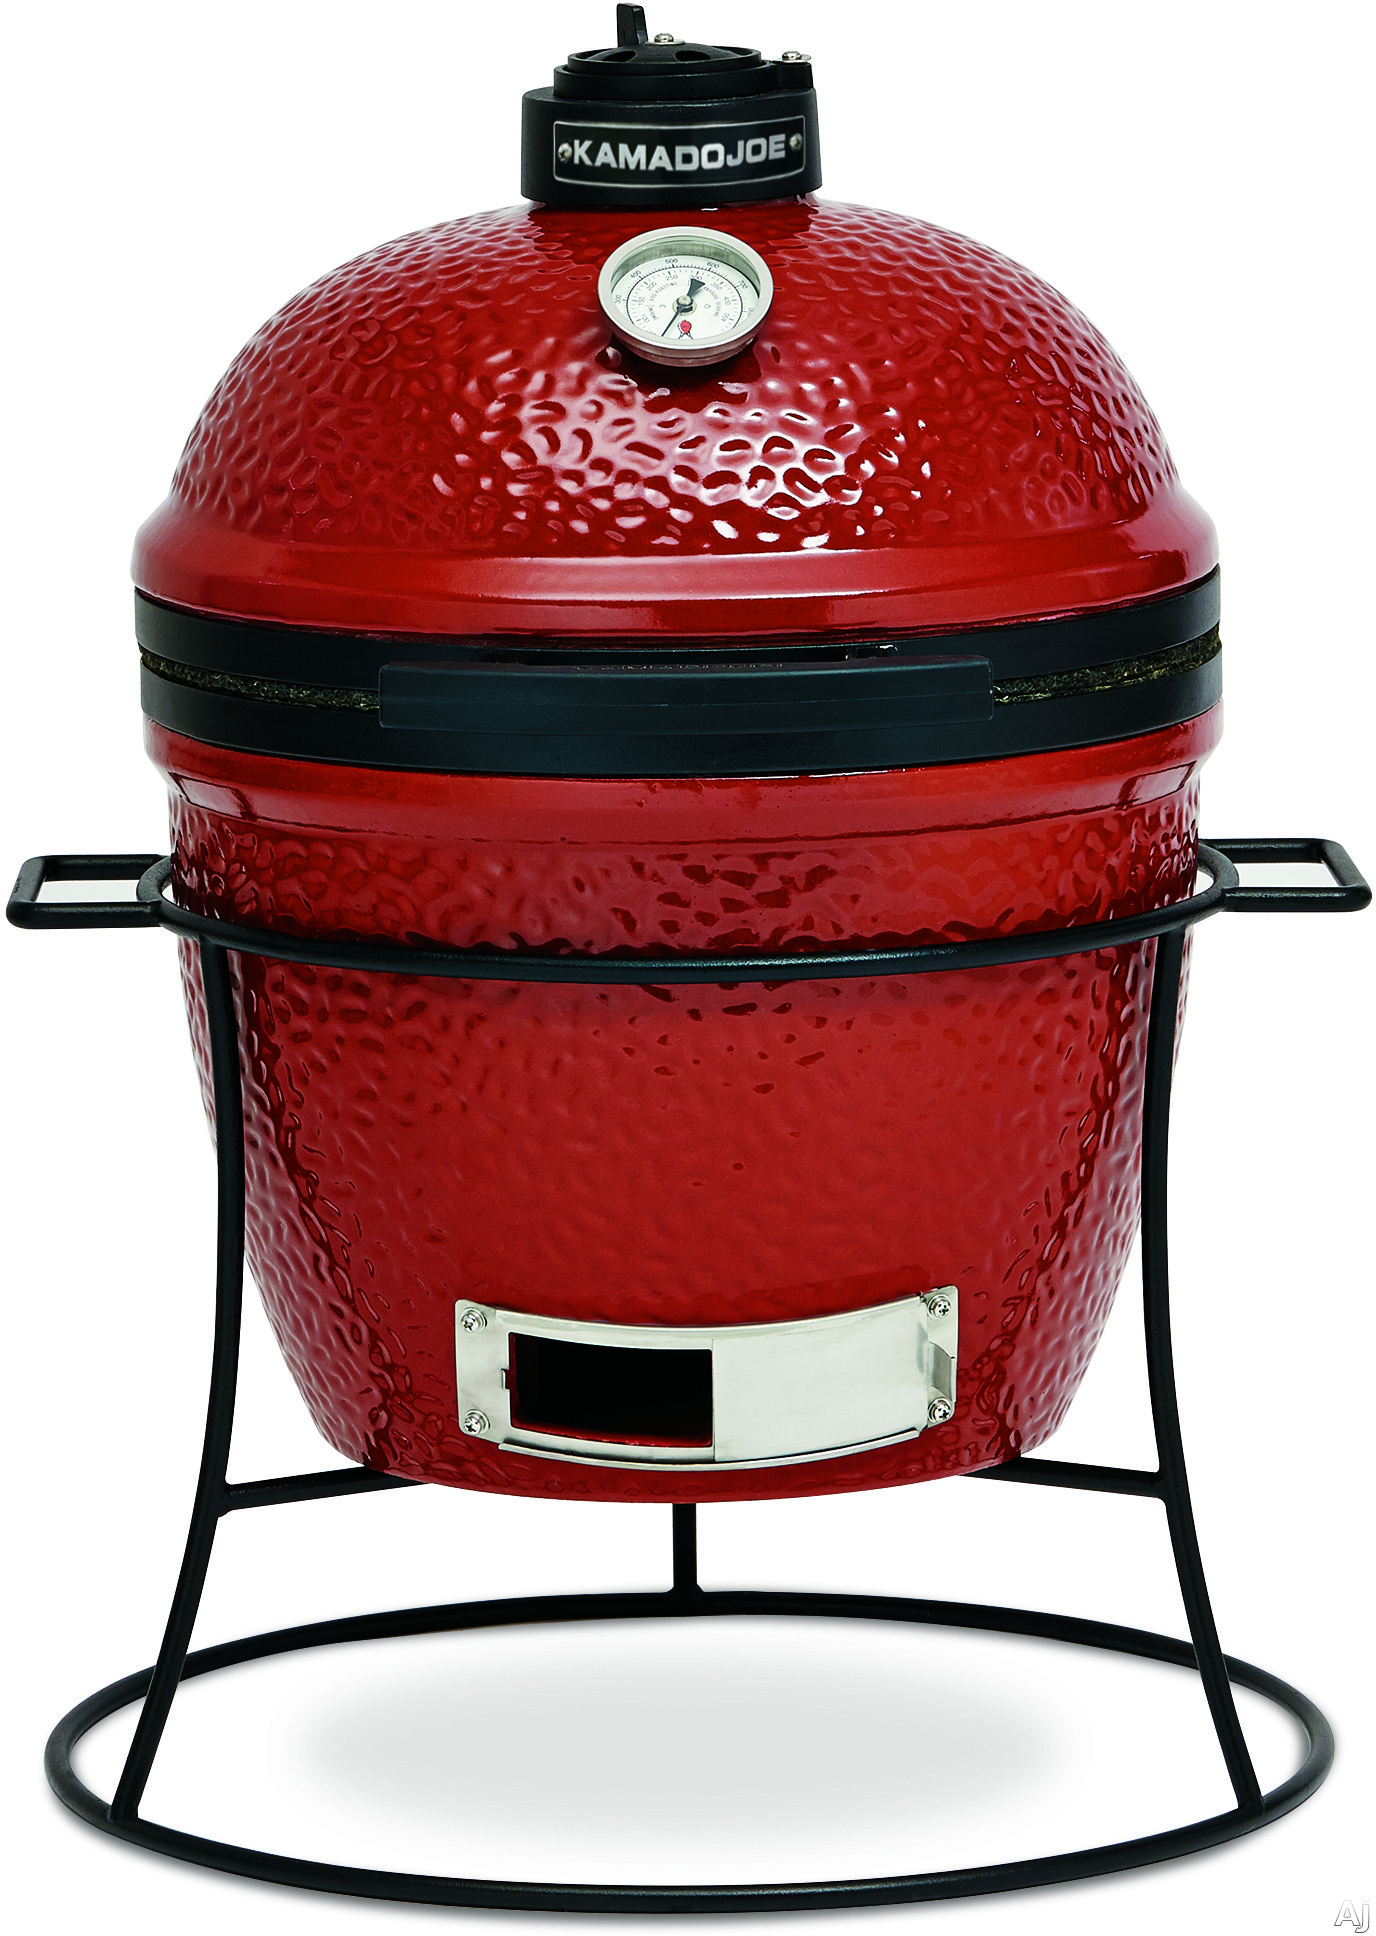 "click for Full Info on this Kamado Joe KJ13RH 13"" Portable Kamado Grill with 148 sq in Cooking Surface  Built in Thermometer  Ceramic Heat Deflector  Grill Gripper and Ash Tool: Red"